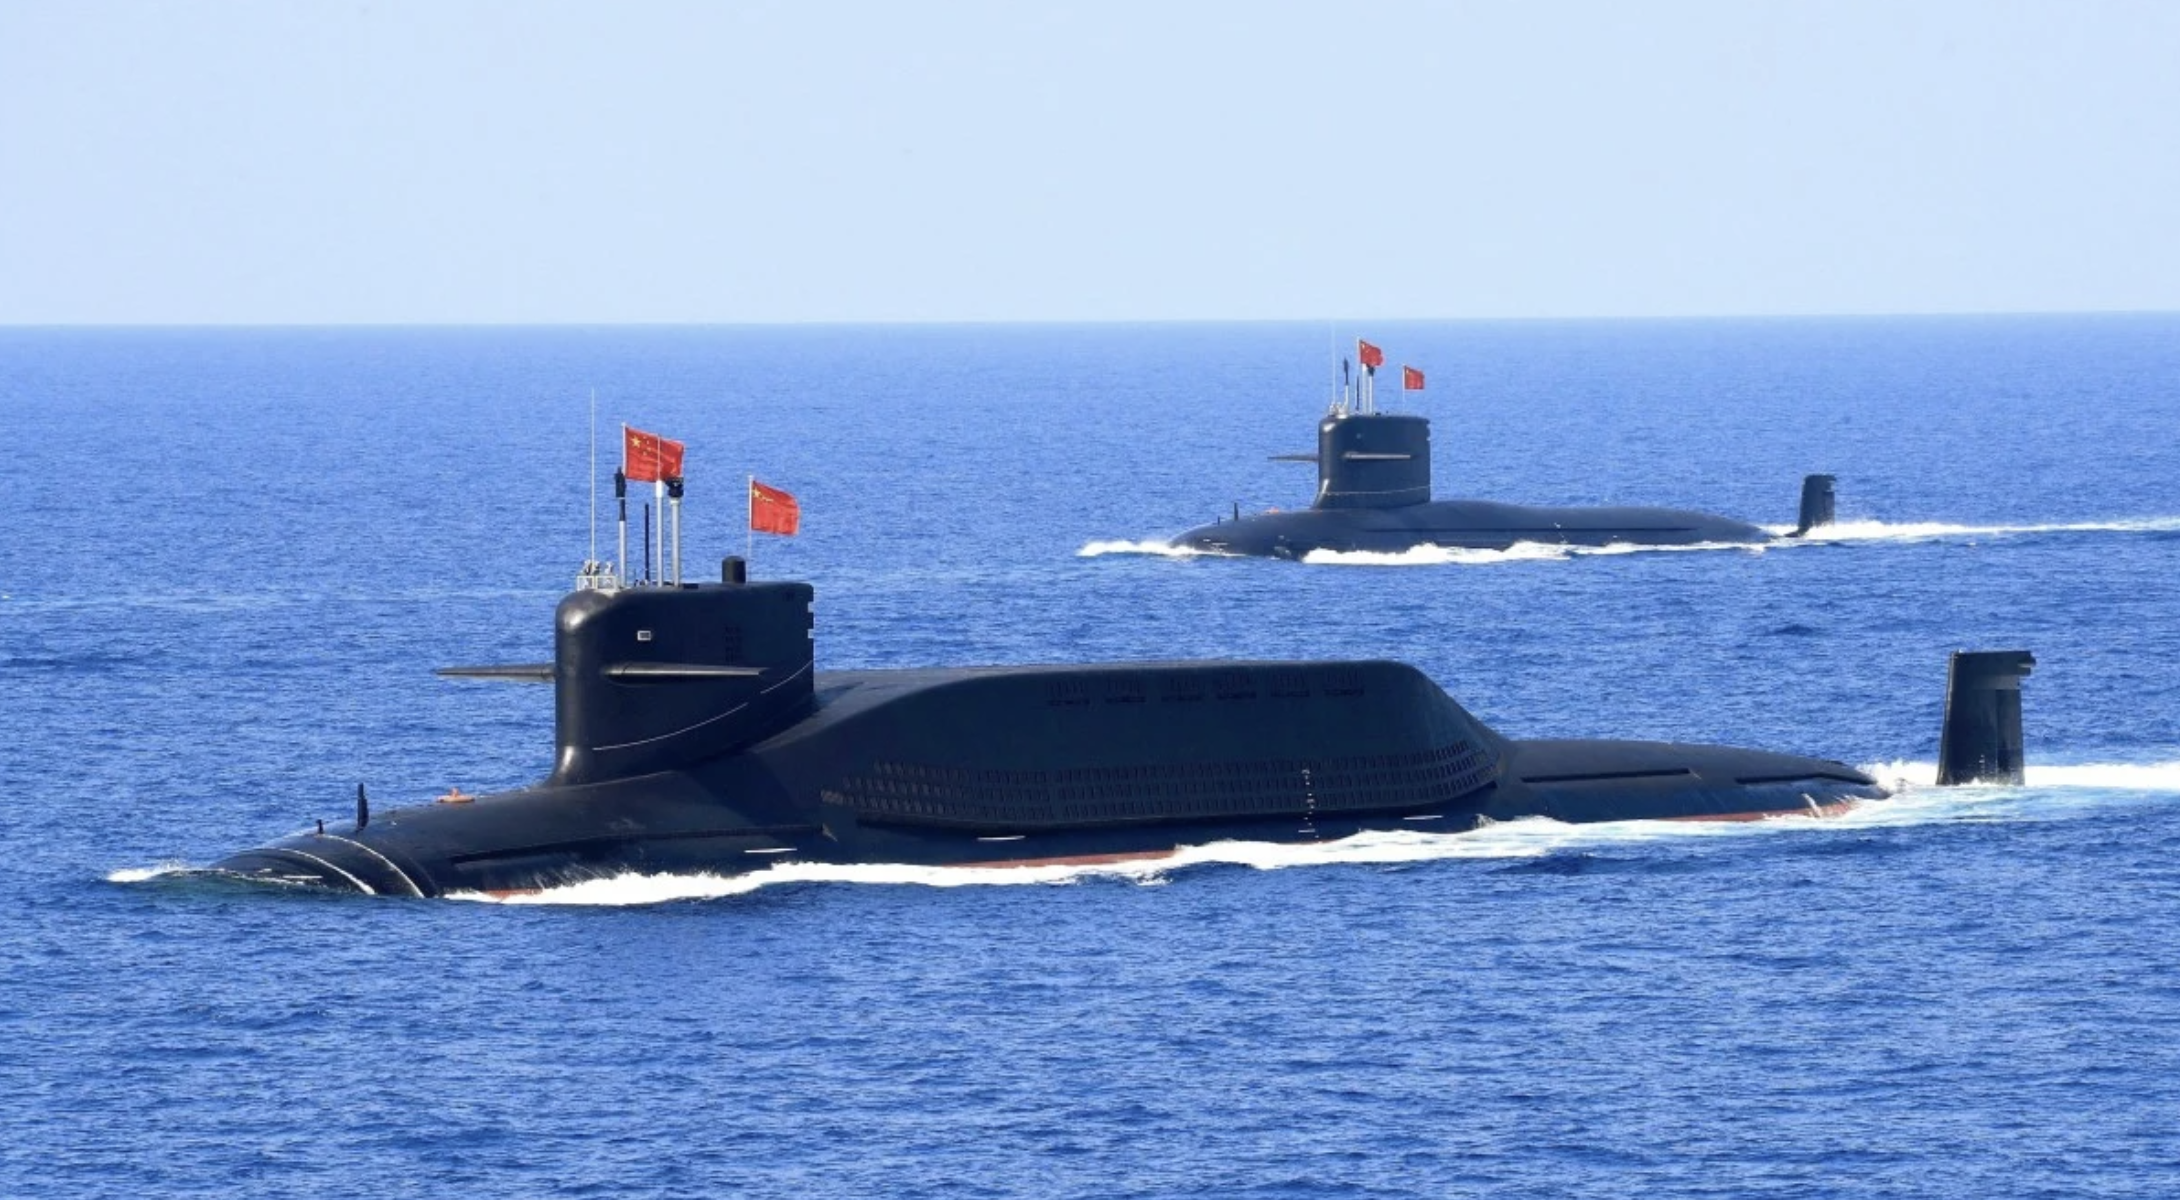 Chinese Navy Puts Two New Nuclear Submarines into Service